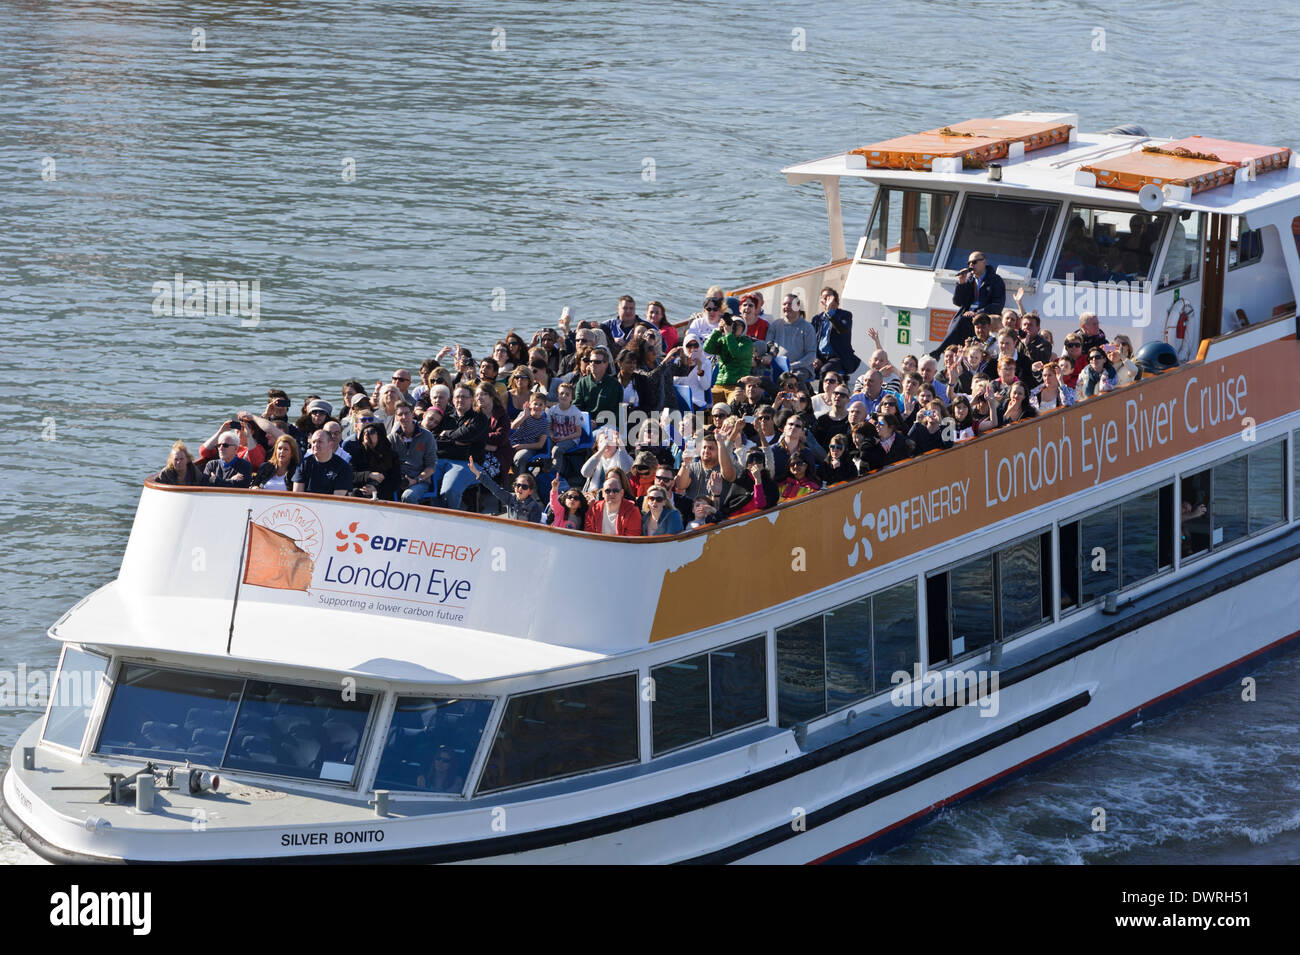 Tourists cruising on the Thames river in a pleasure boat, London, England, United Kingdom. - Stock Image